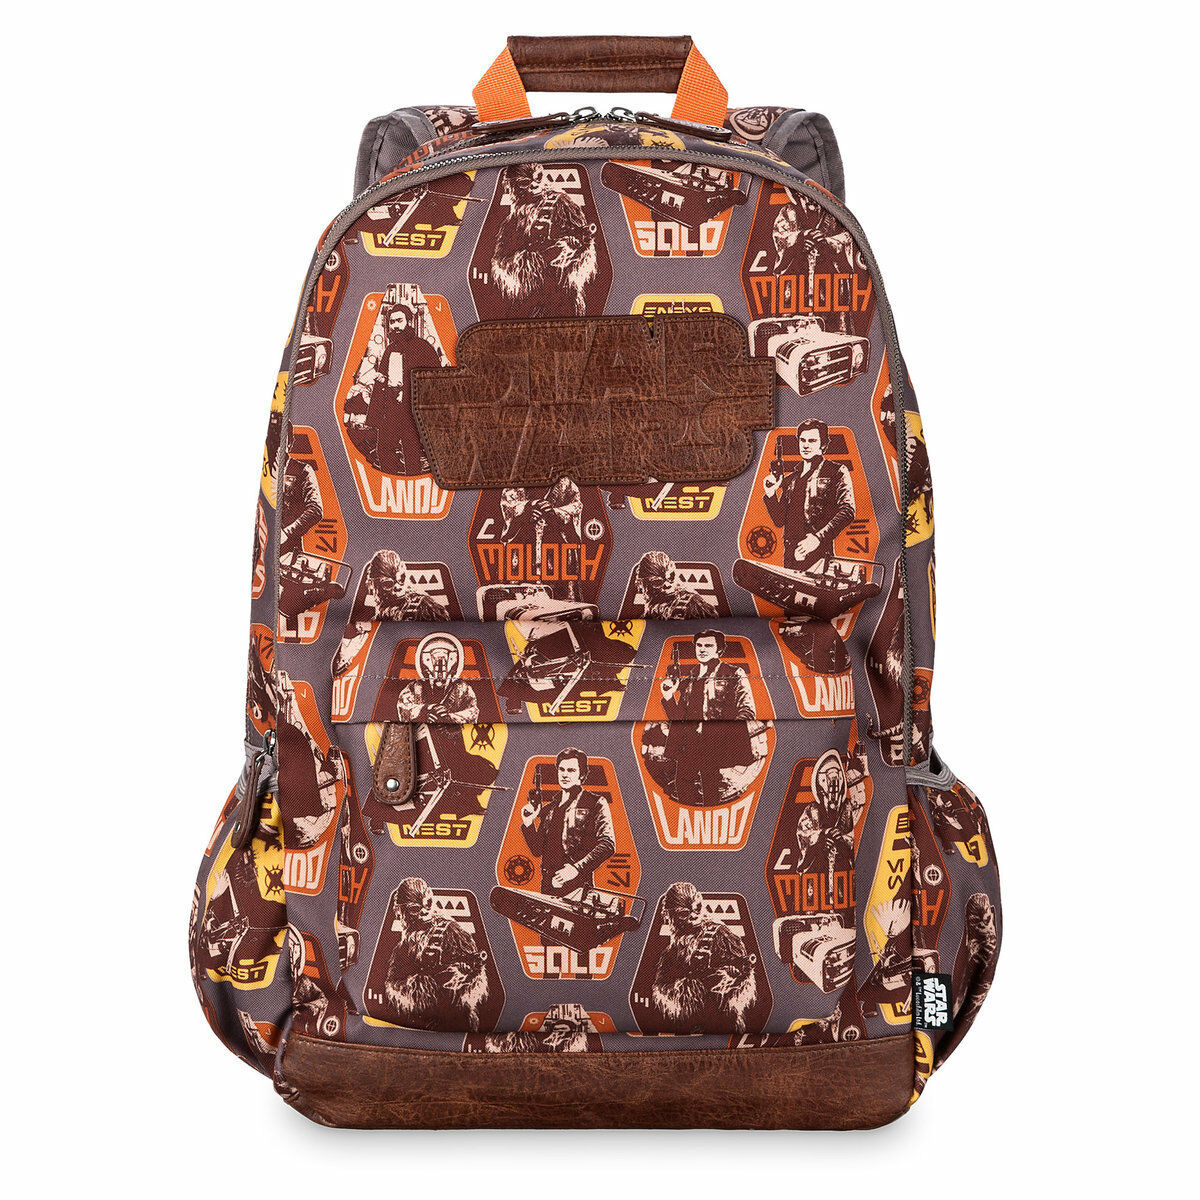 Disney Store Hans Solo A Star Wars Story Backpack for Adults